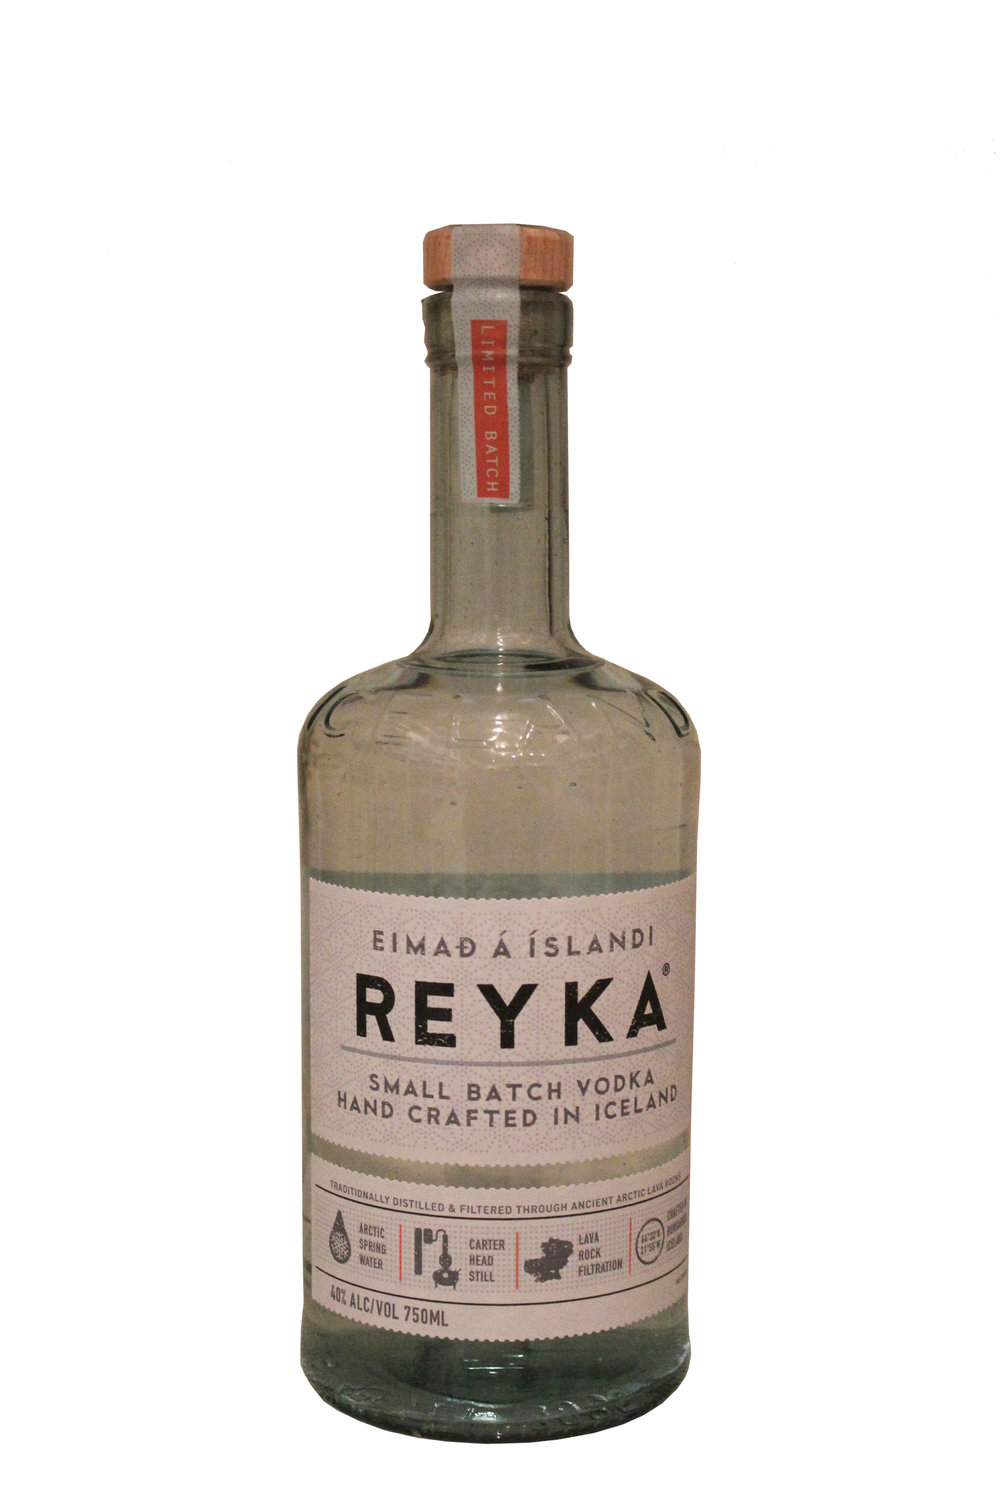 Small-Batch Handcrafted Vodka Reyka, Iceland